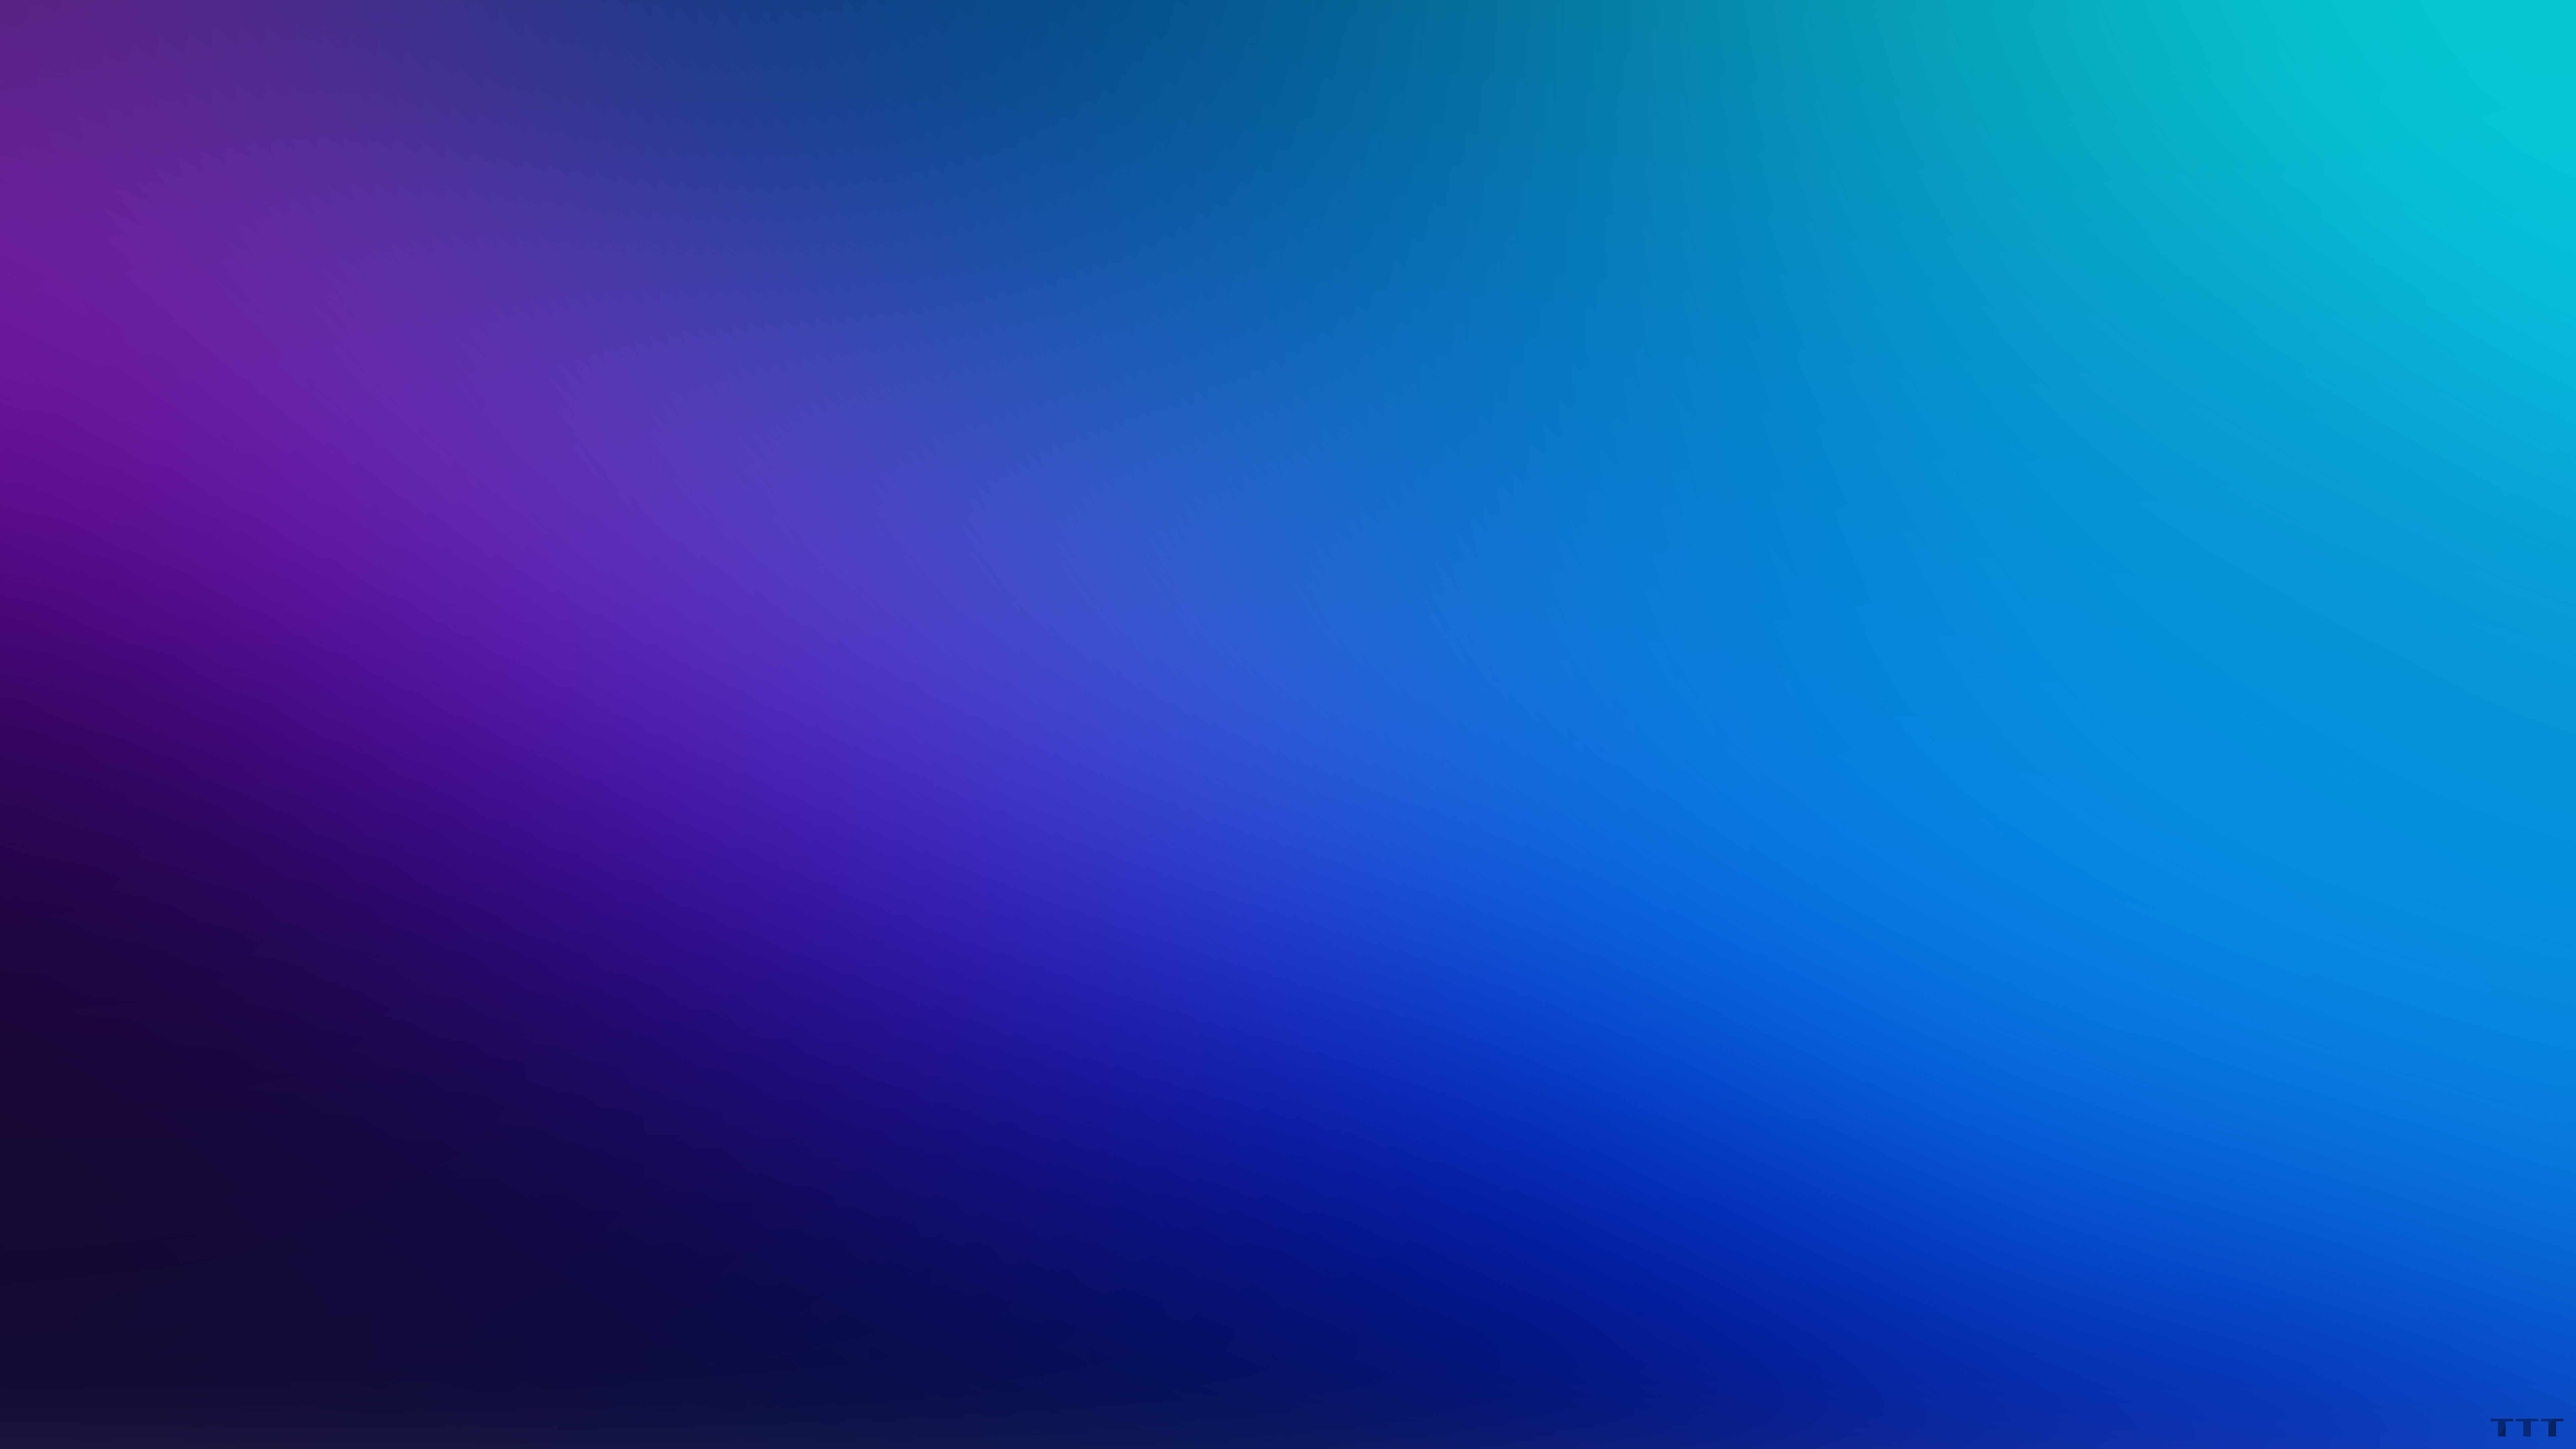 Blue Gradient Wallpaper Posted By Michelle Johnson